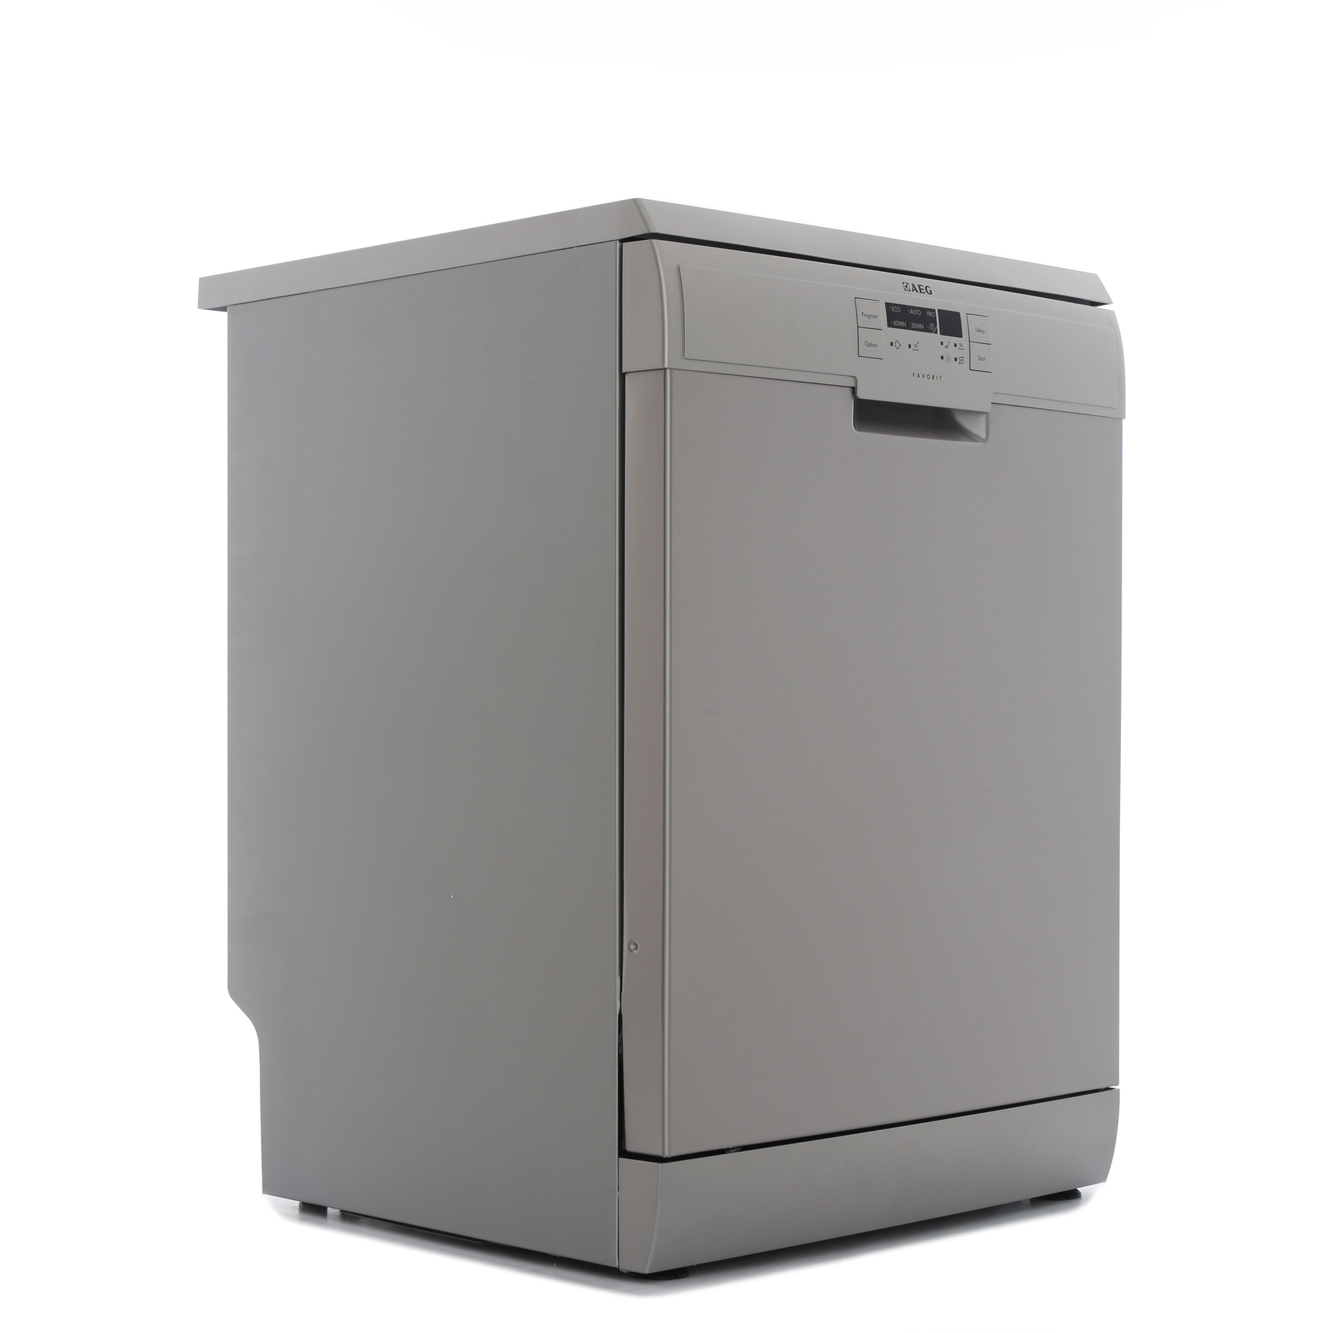 AEG F56302M0 Dishwasher